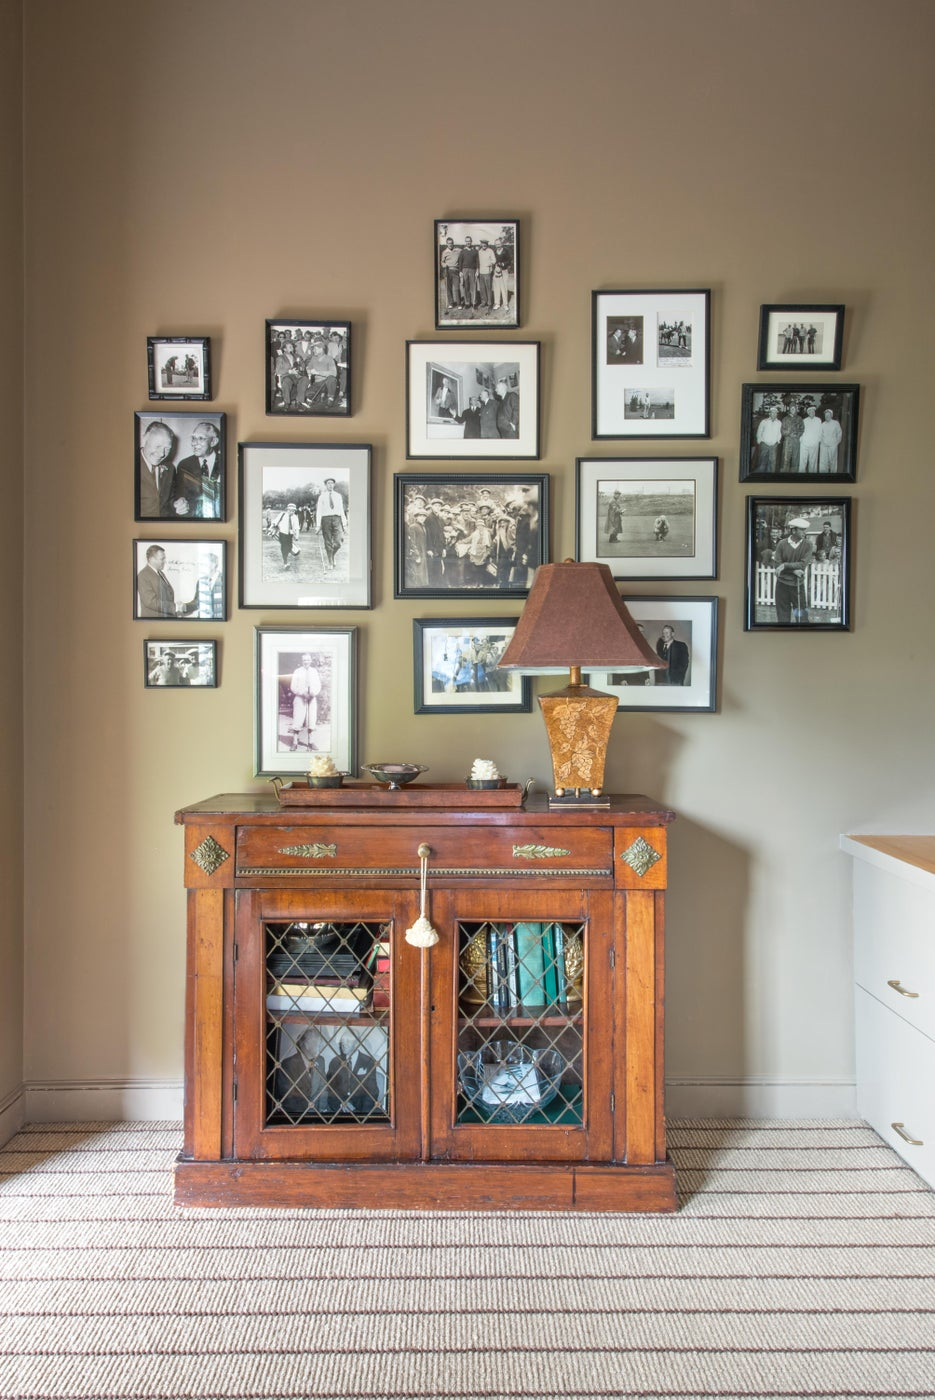 Antique Sideboard and Photo Collage